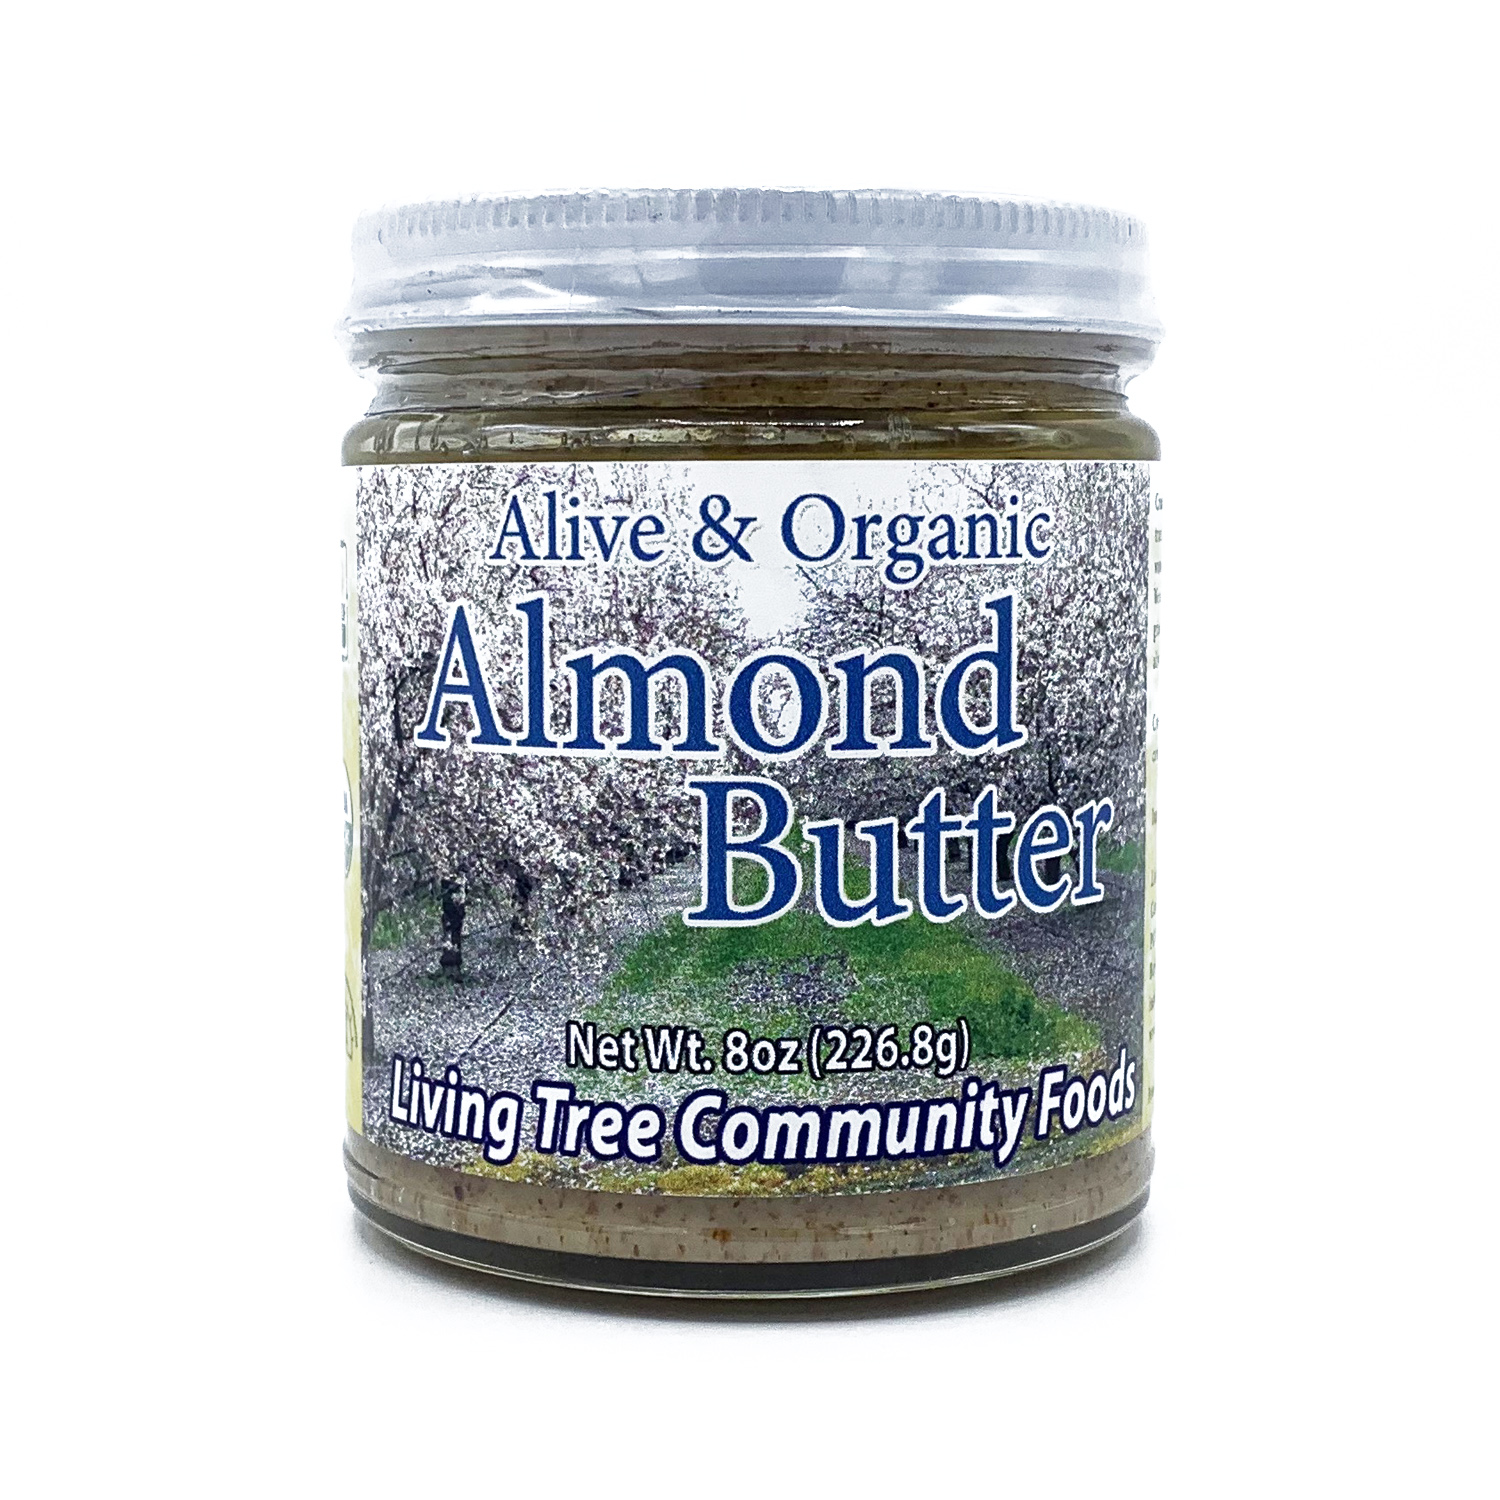 Organic almond butter - raw and alive 8oz.